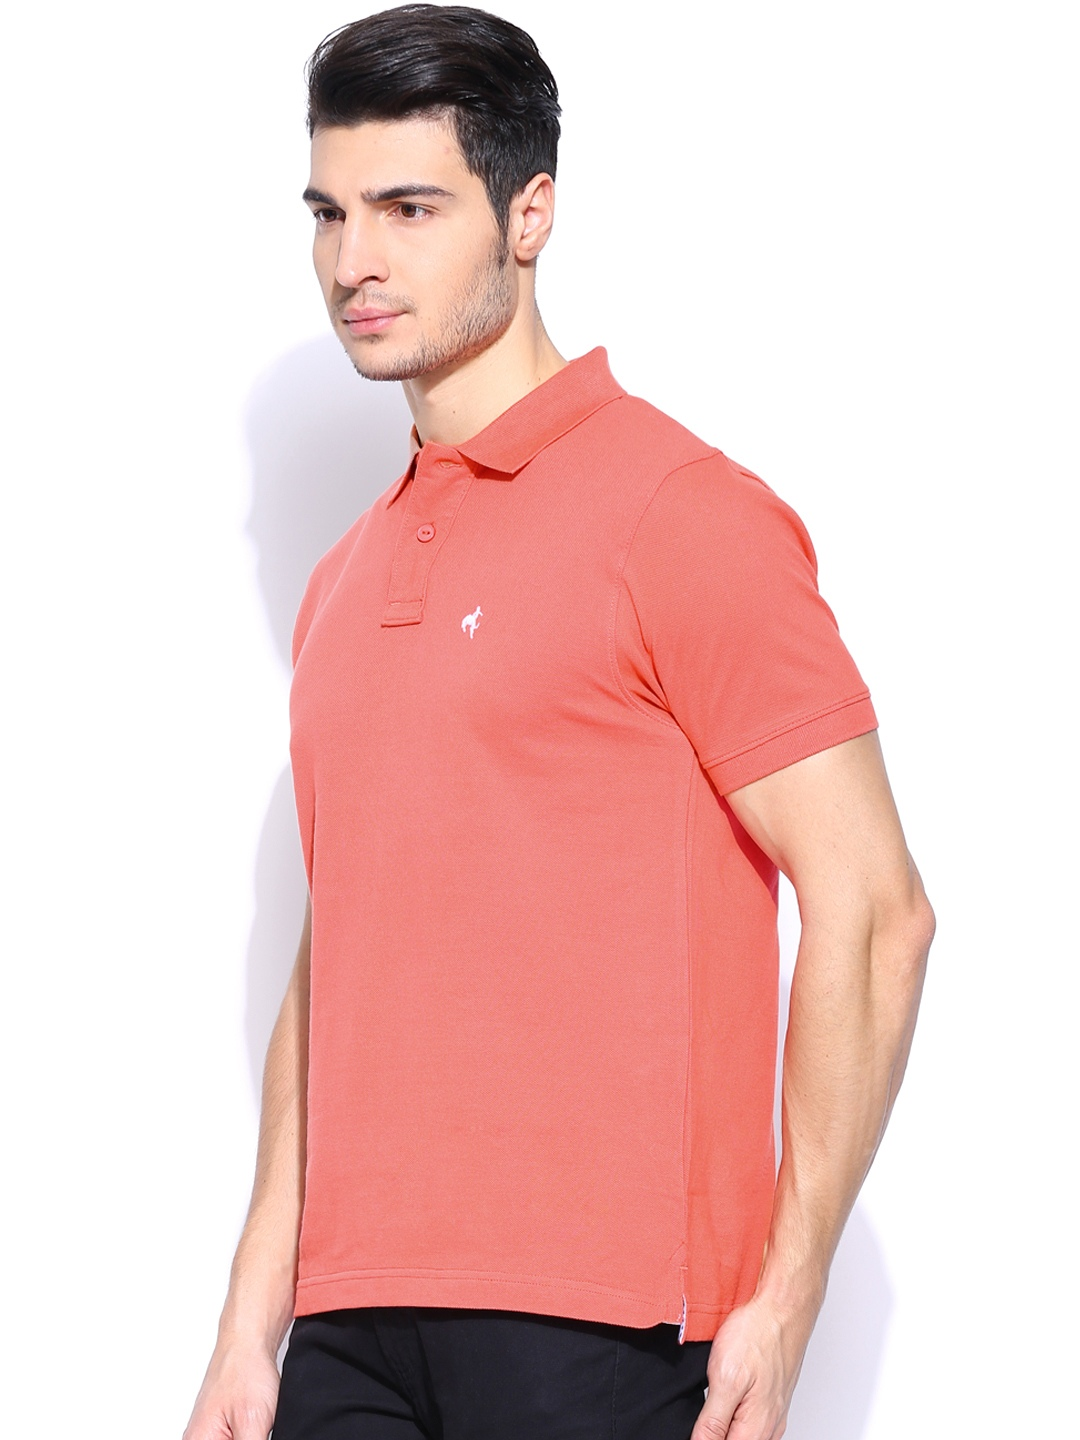 Myntra wrangler men coral pink polo t shirt 680613 buy for Coral shirts for guys